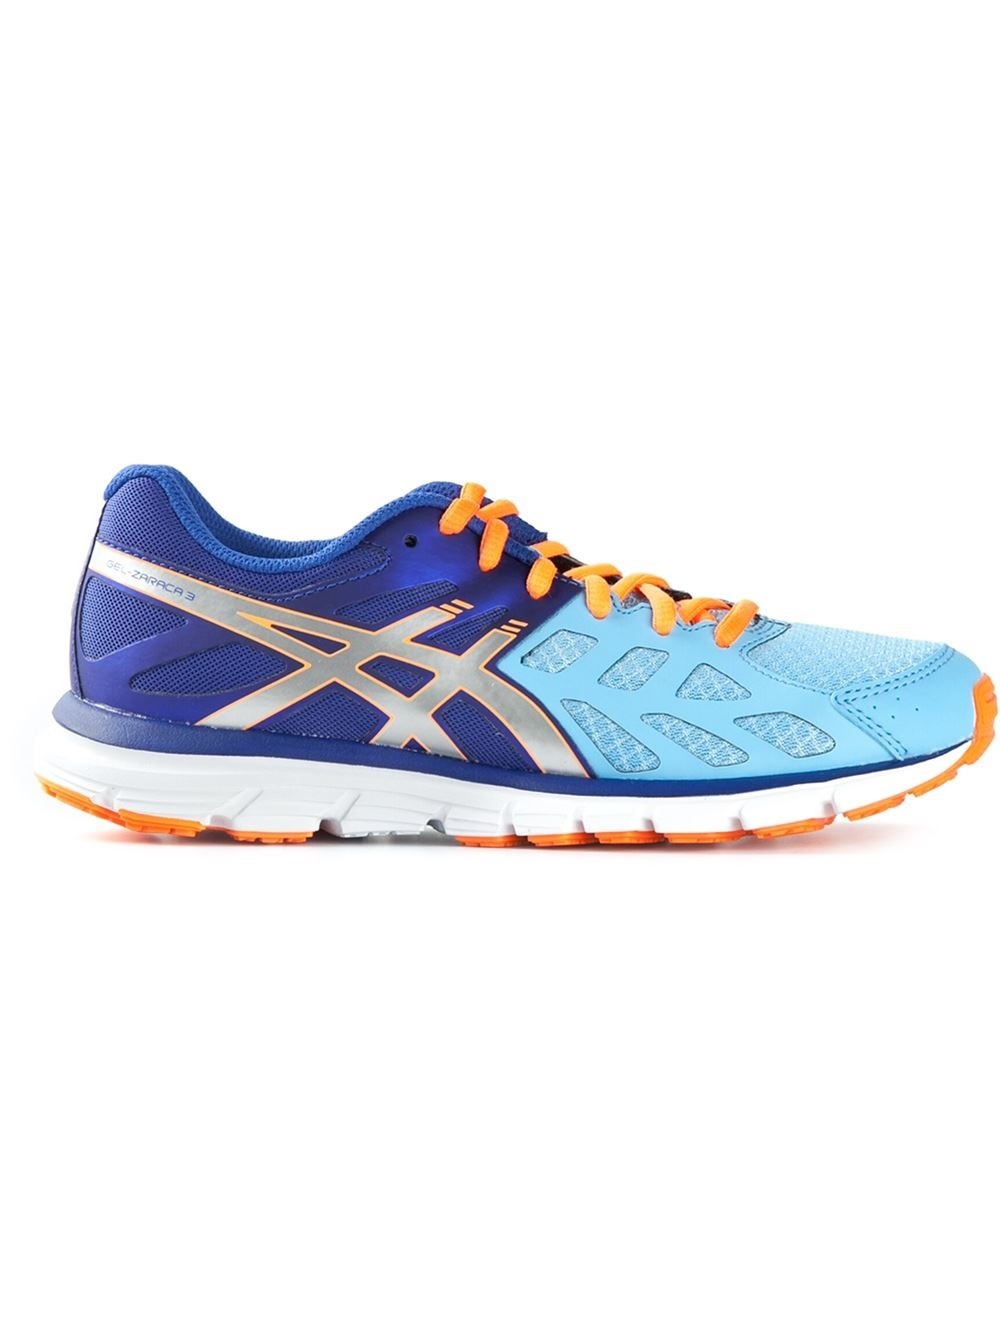 asics shoes online cyprus